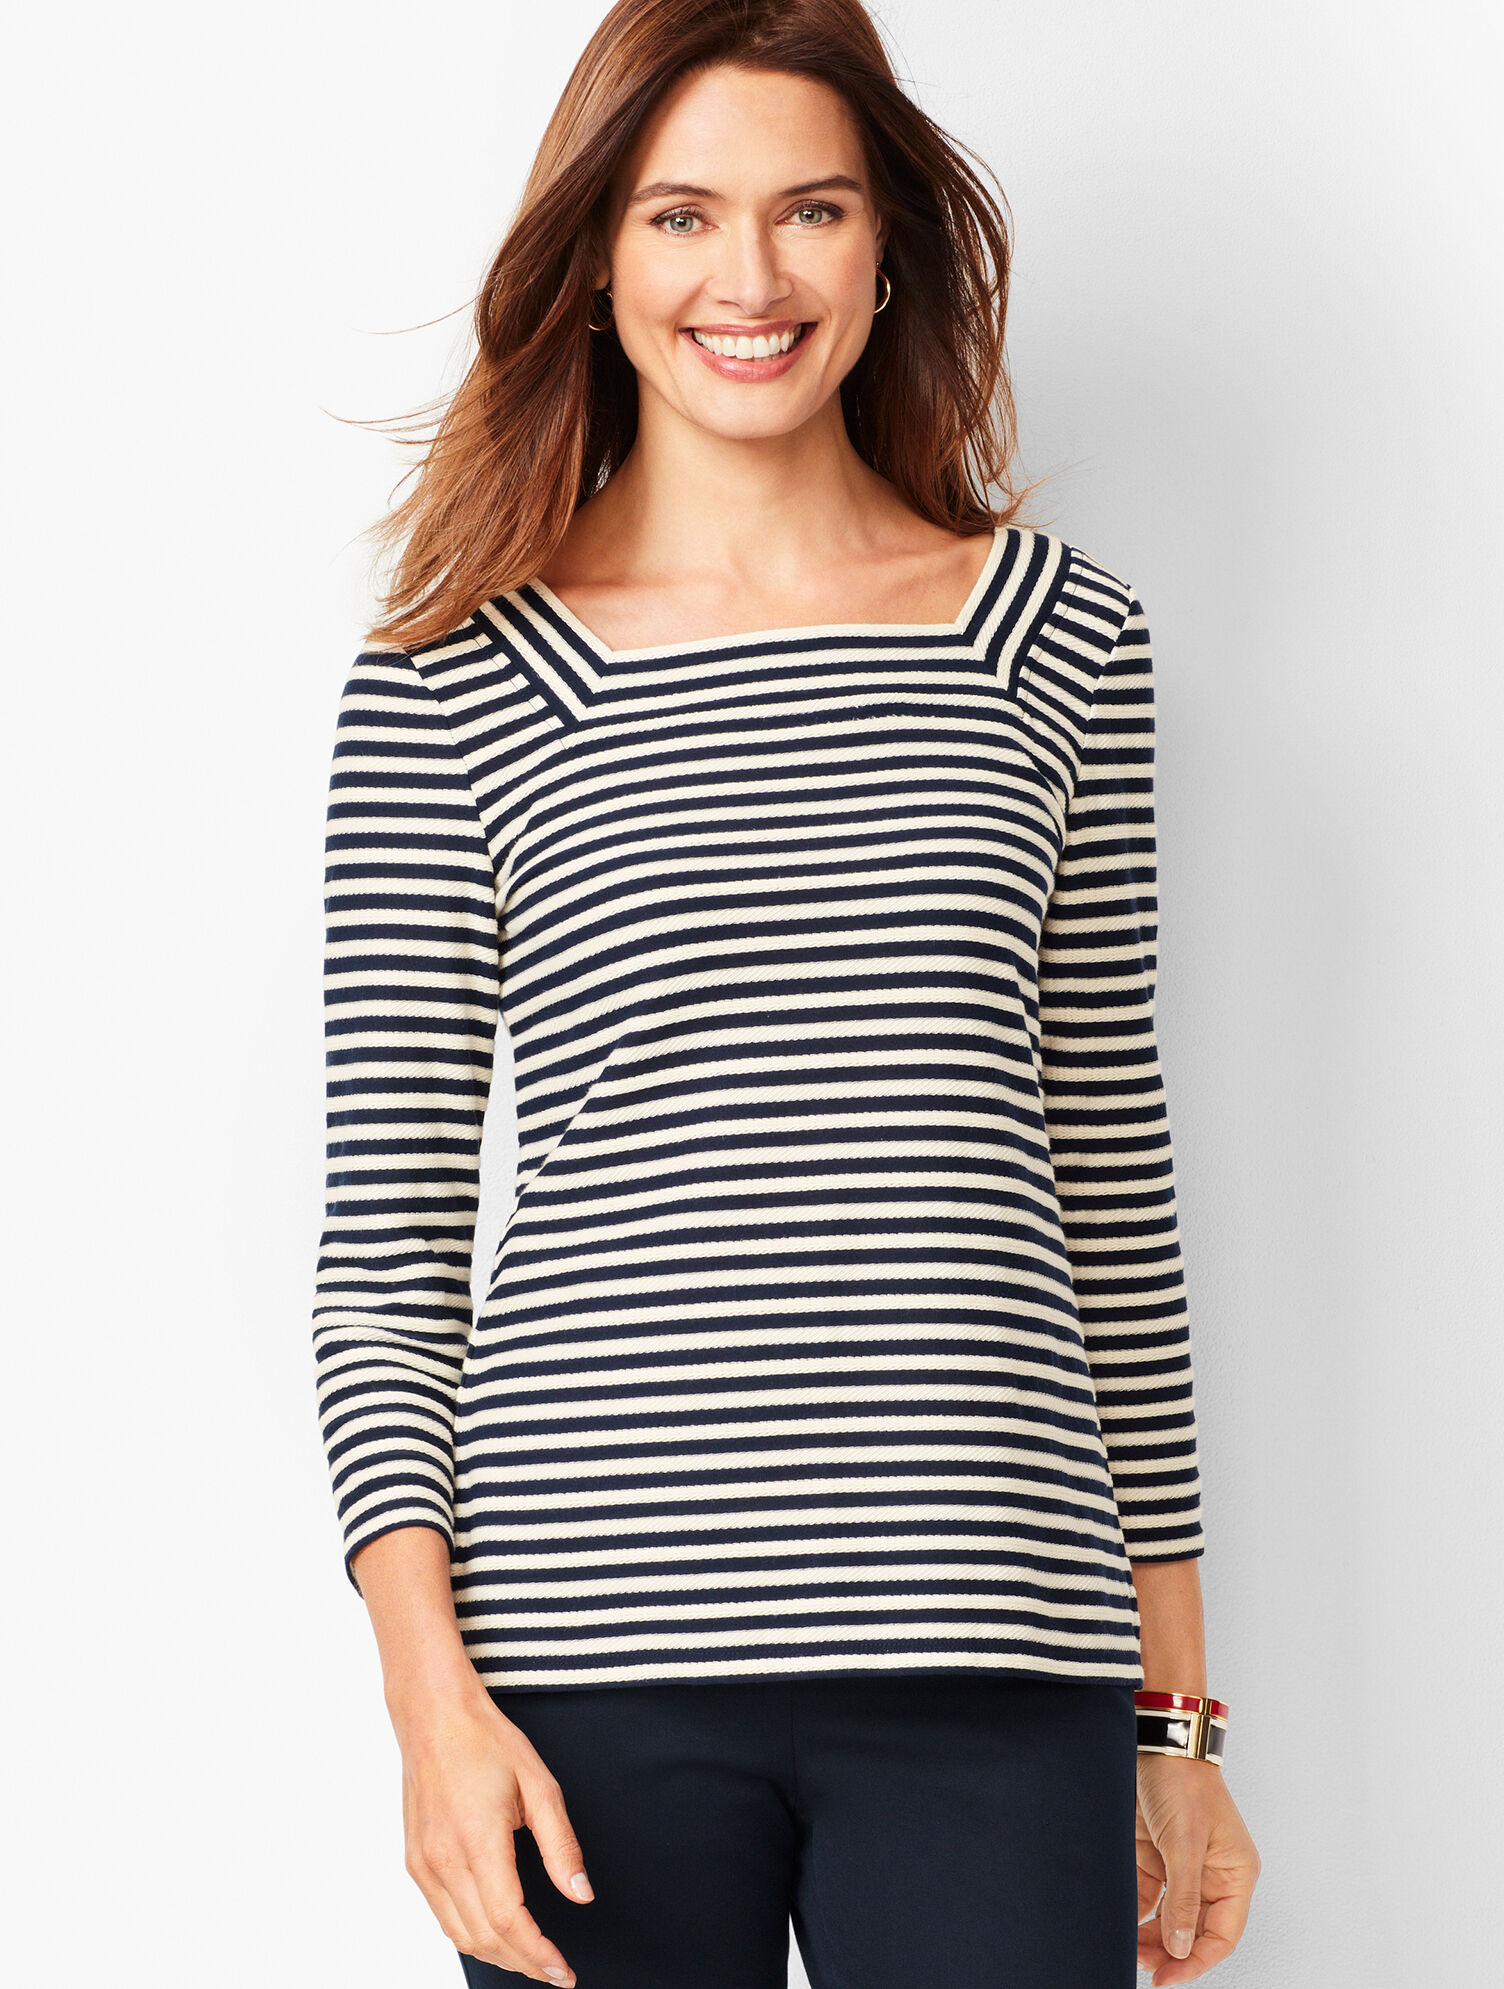 One-pieces 2xlong Sleeve Tops 3-6months Clear-Cut Texture